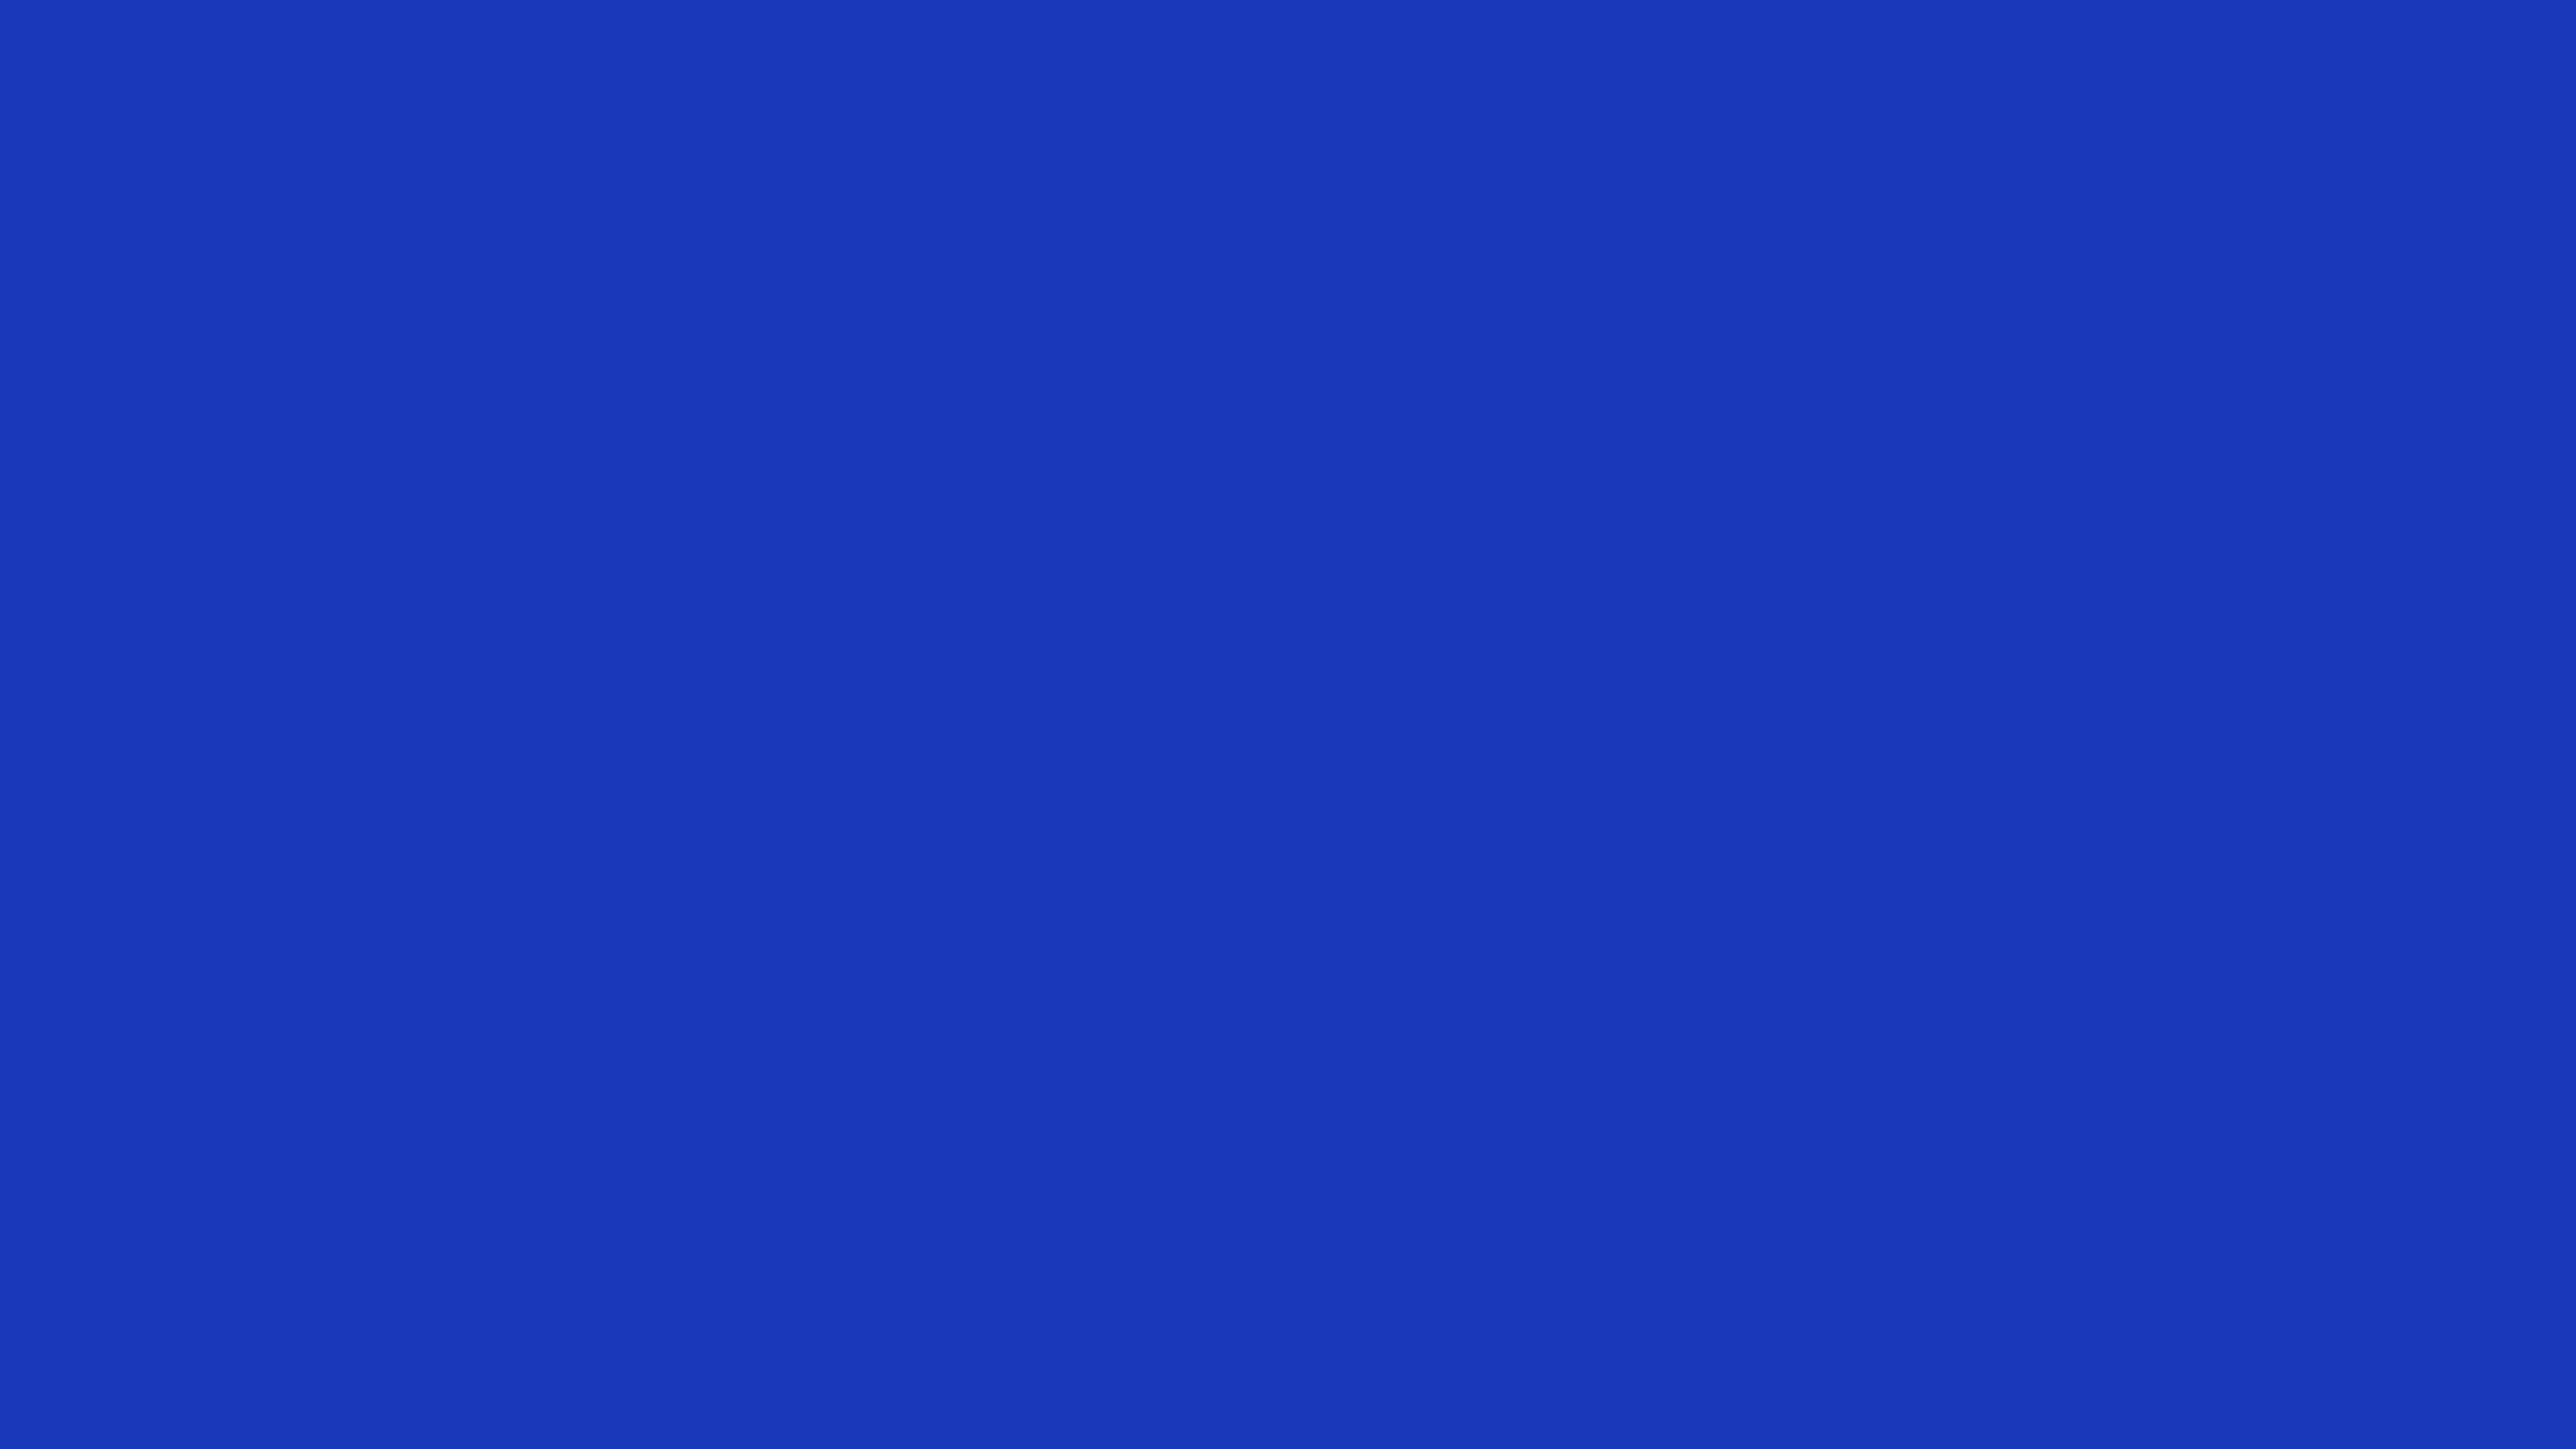 5120x2880 Persian Blue Solid Color Background